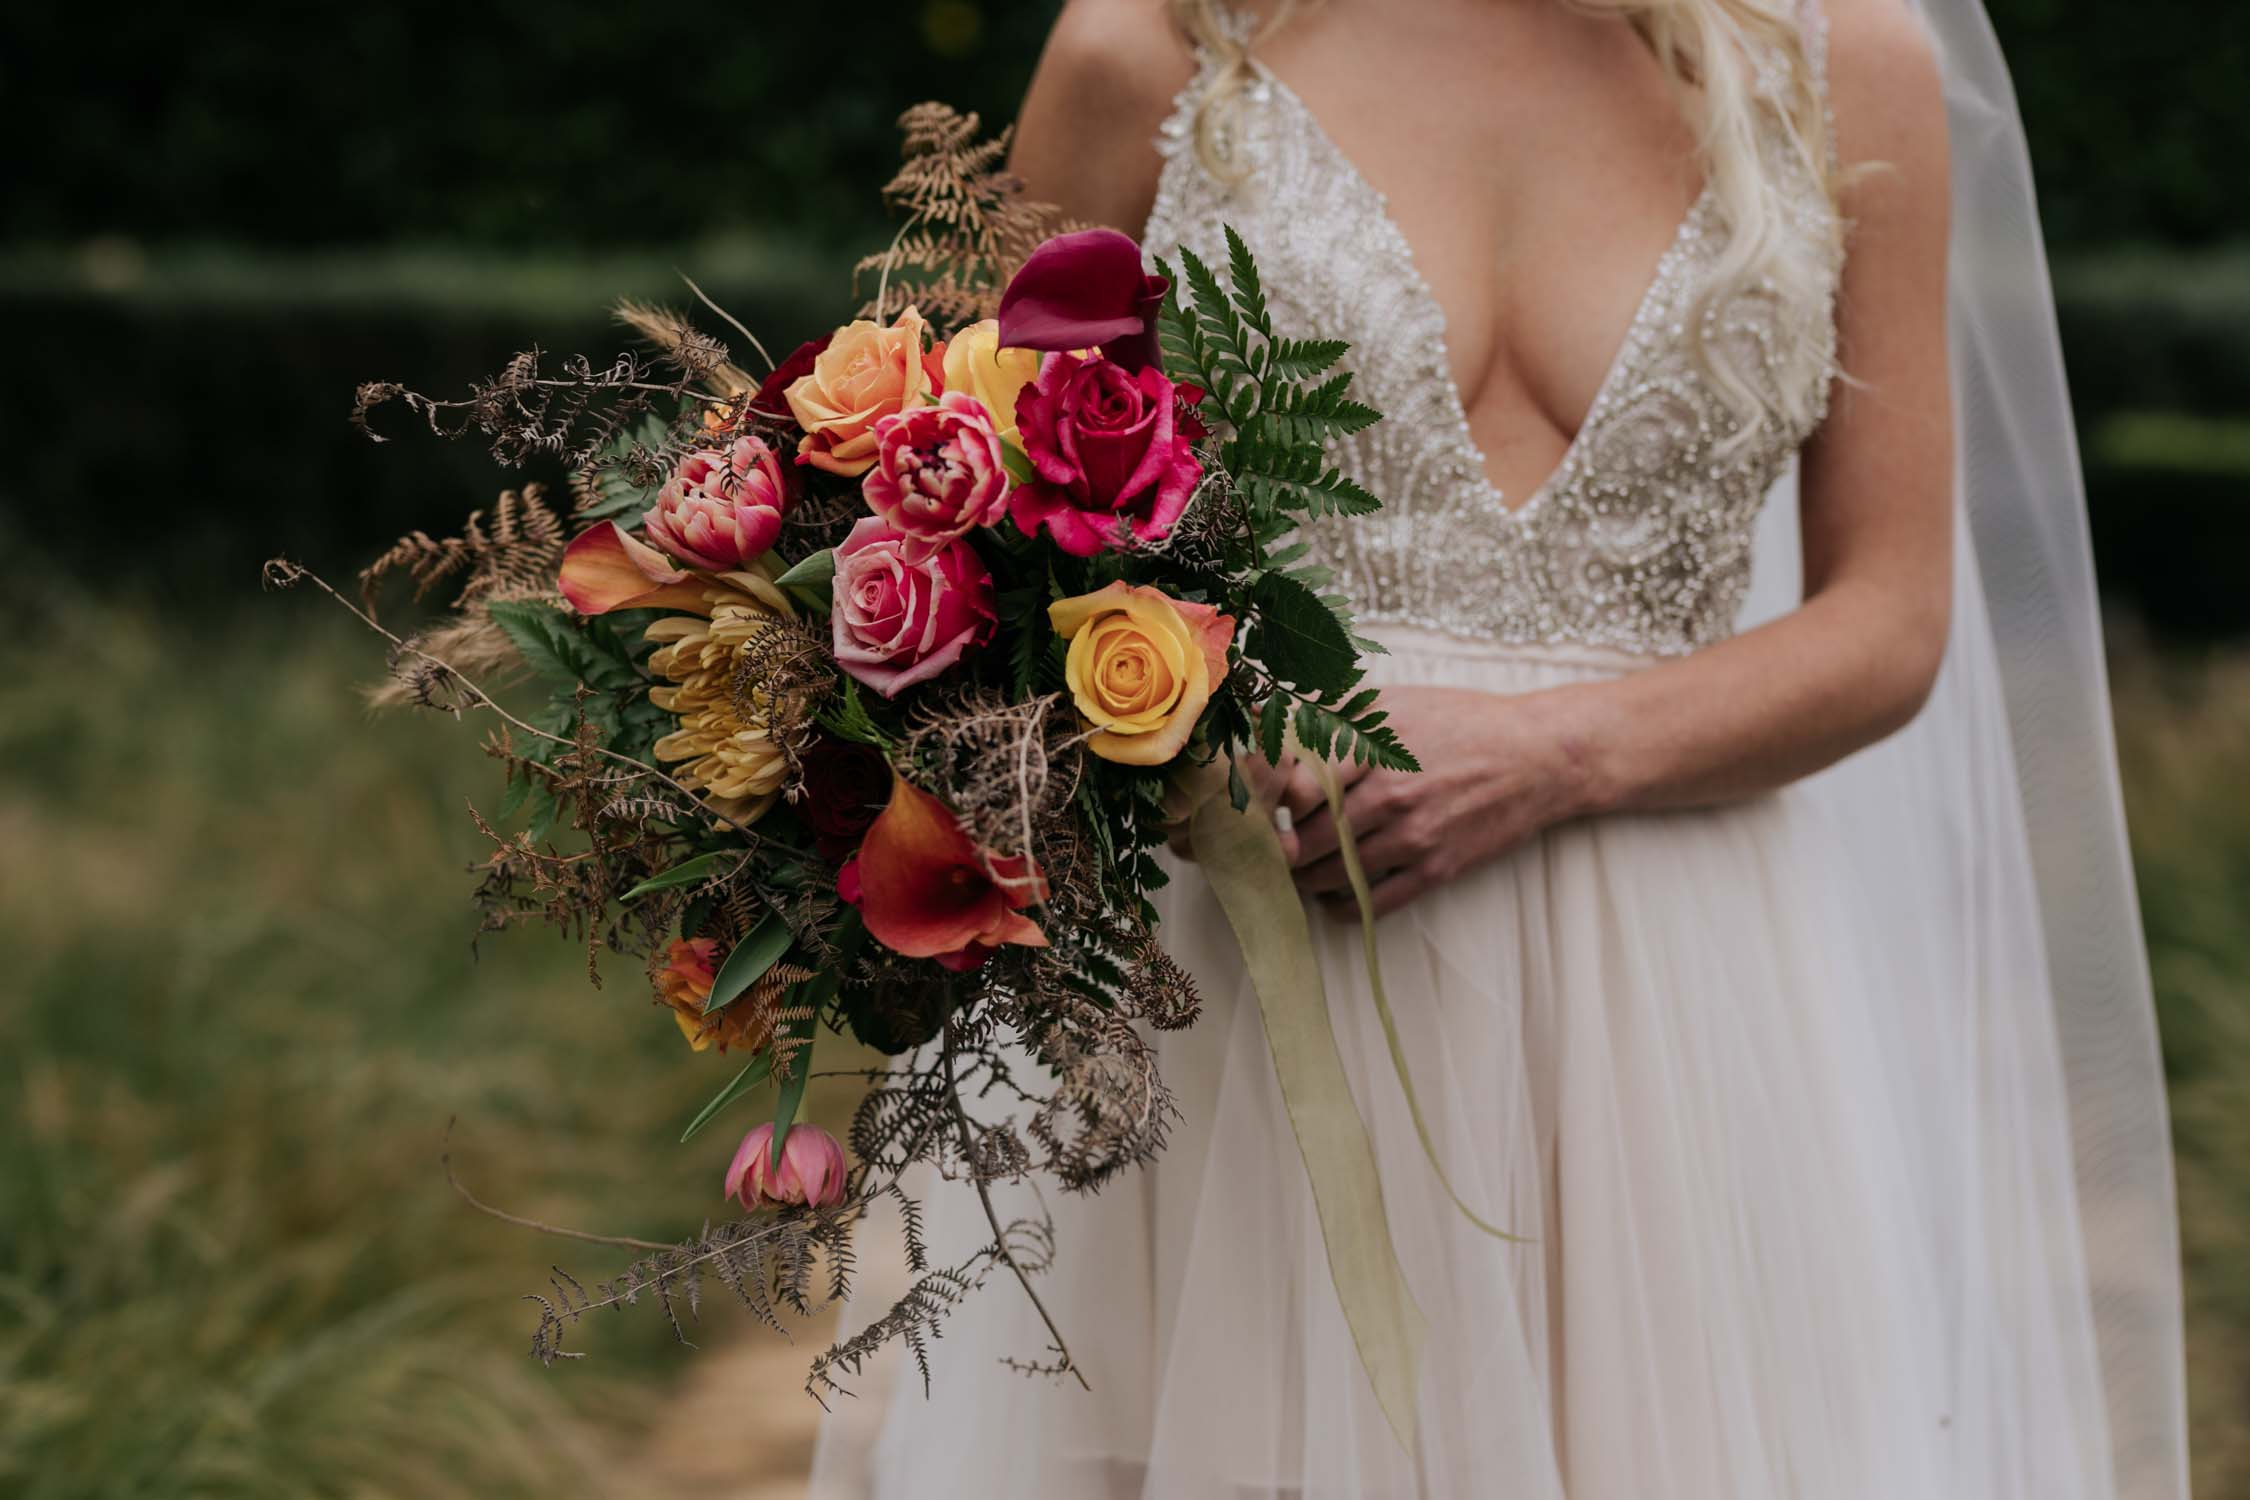 Bride wearing a low cut dress with beautiful and detailed beadwork with a skirt that is see through and cute shorts underneath almost like a jump suit underneath a wedding dress. She is holding a wedding bouquet of burnt orange pink and red flowers and roses with dried ferns and grass in it.